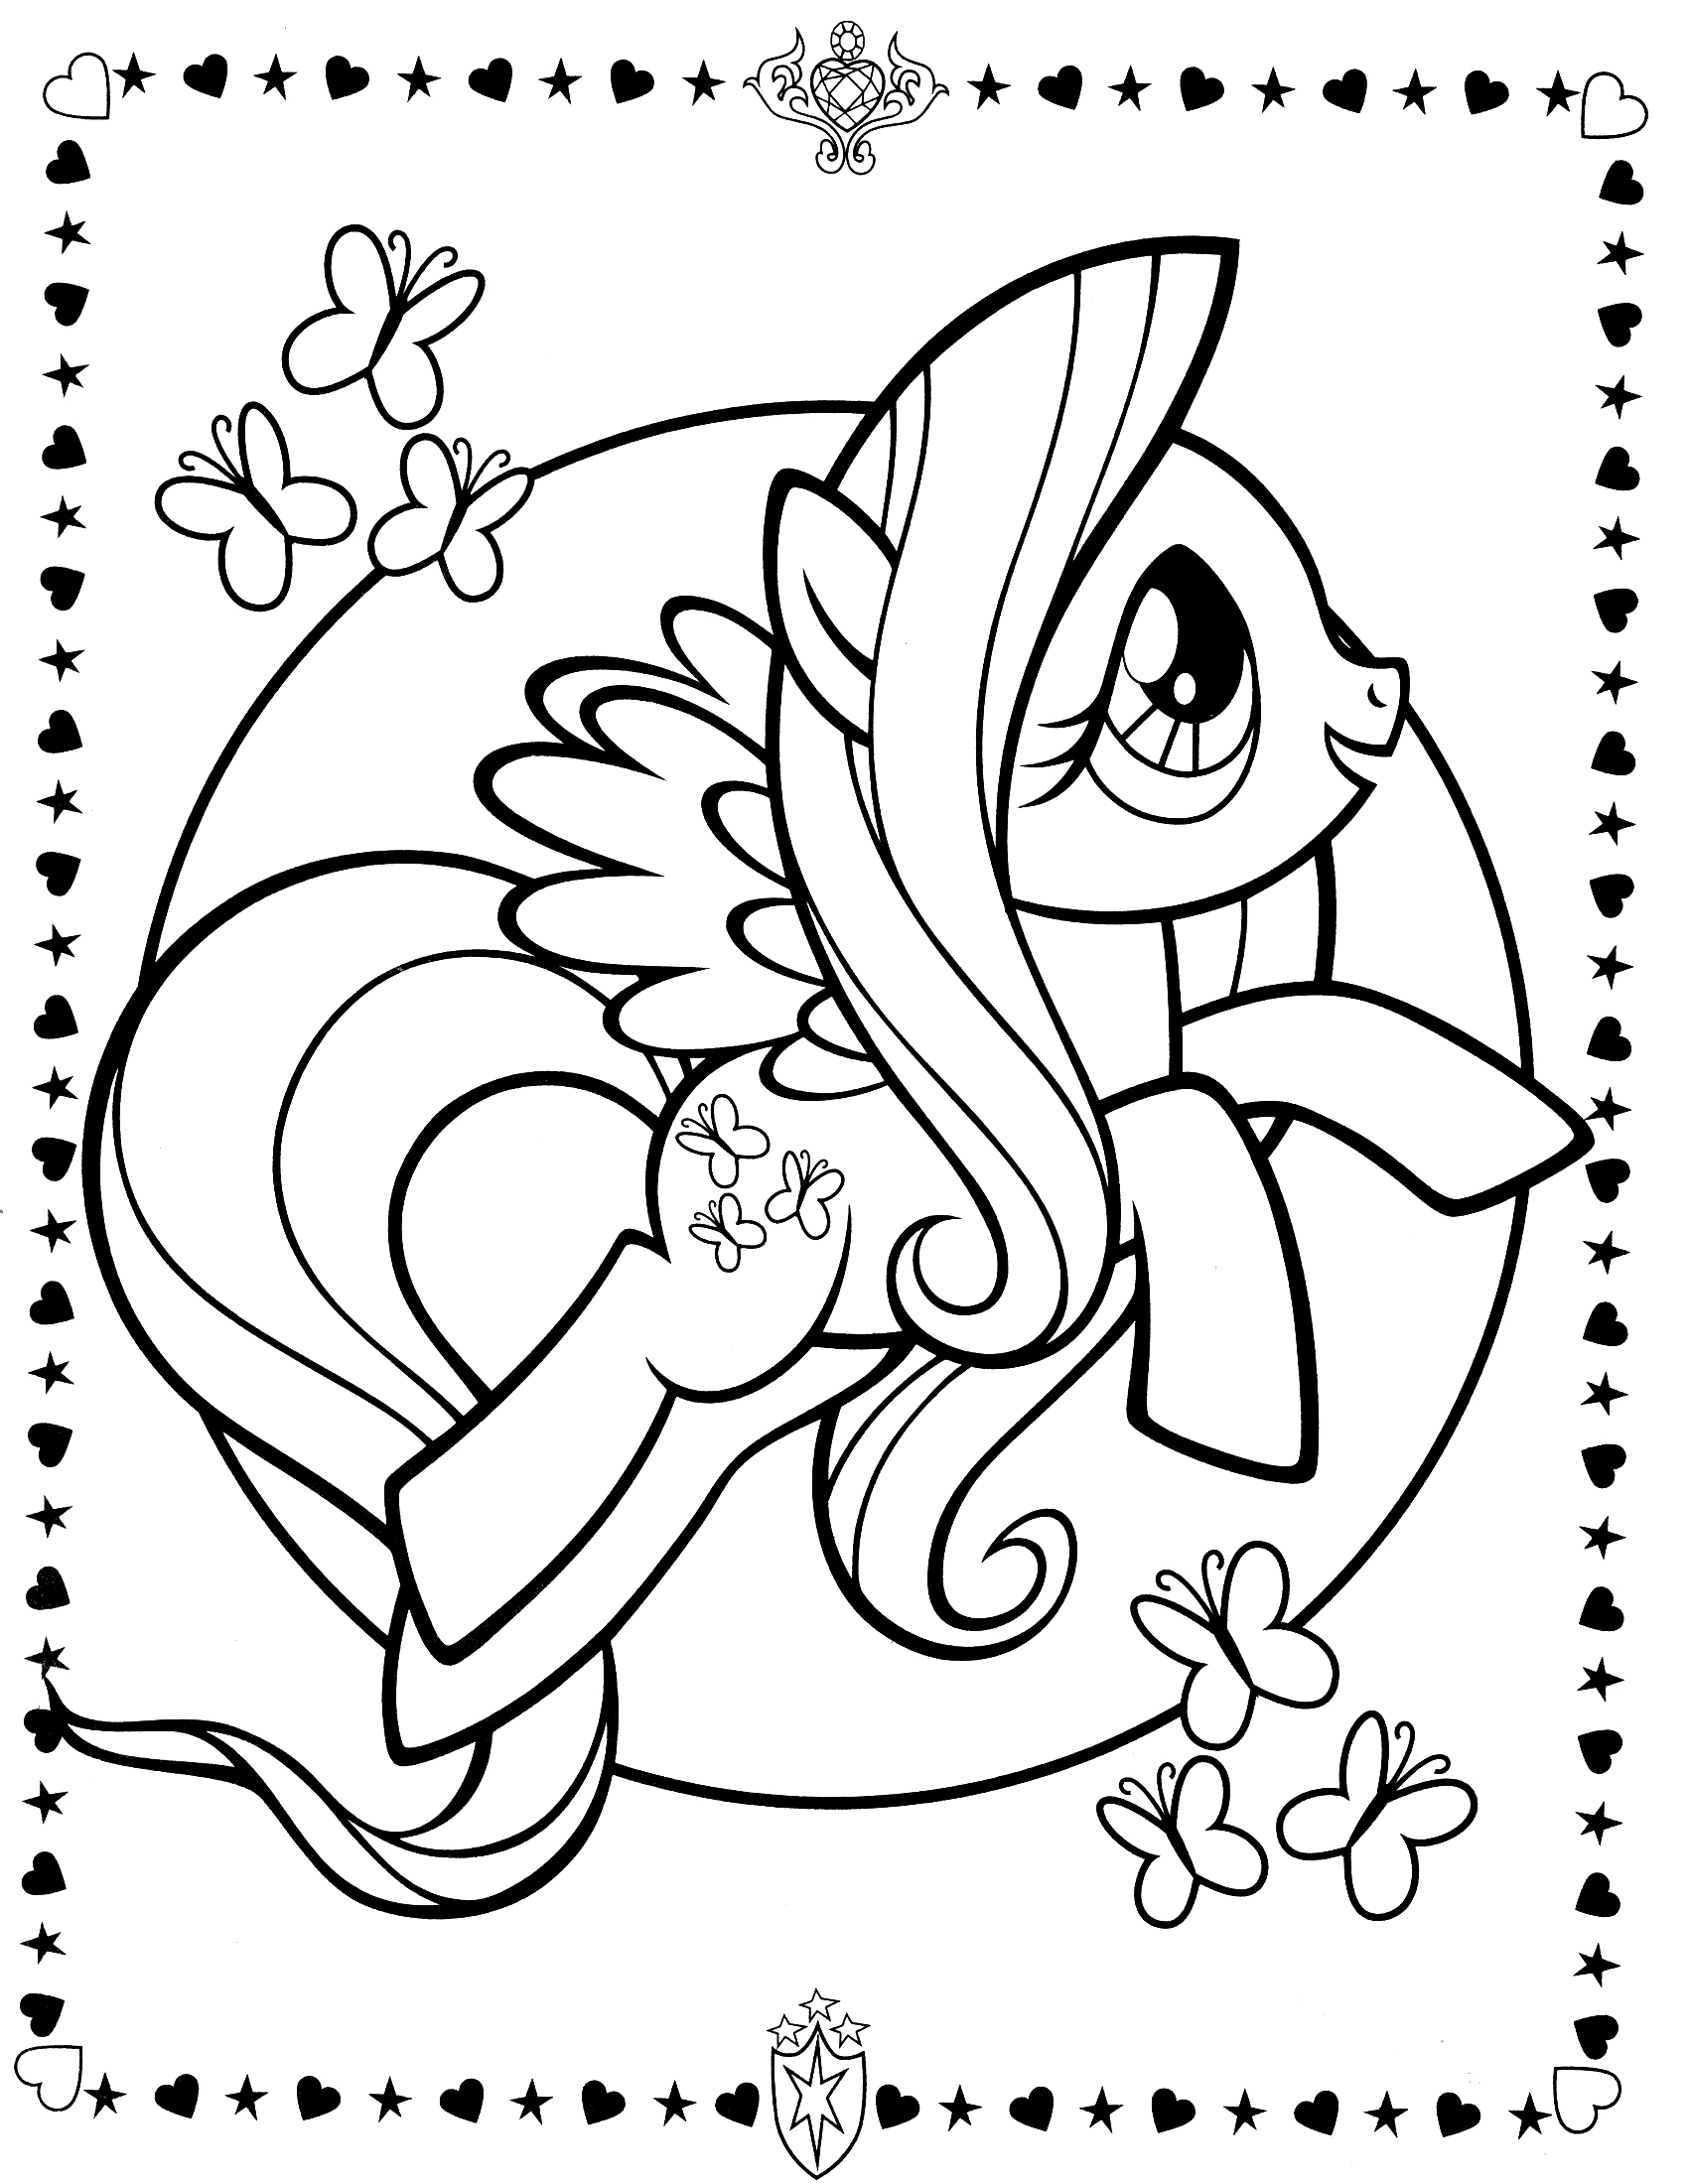 my little pony colouring pictures ponies from ponyville coloring pages free printable pictures little my colouring pony